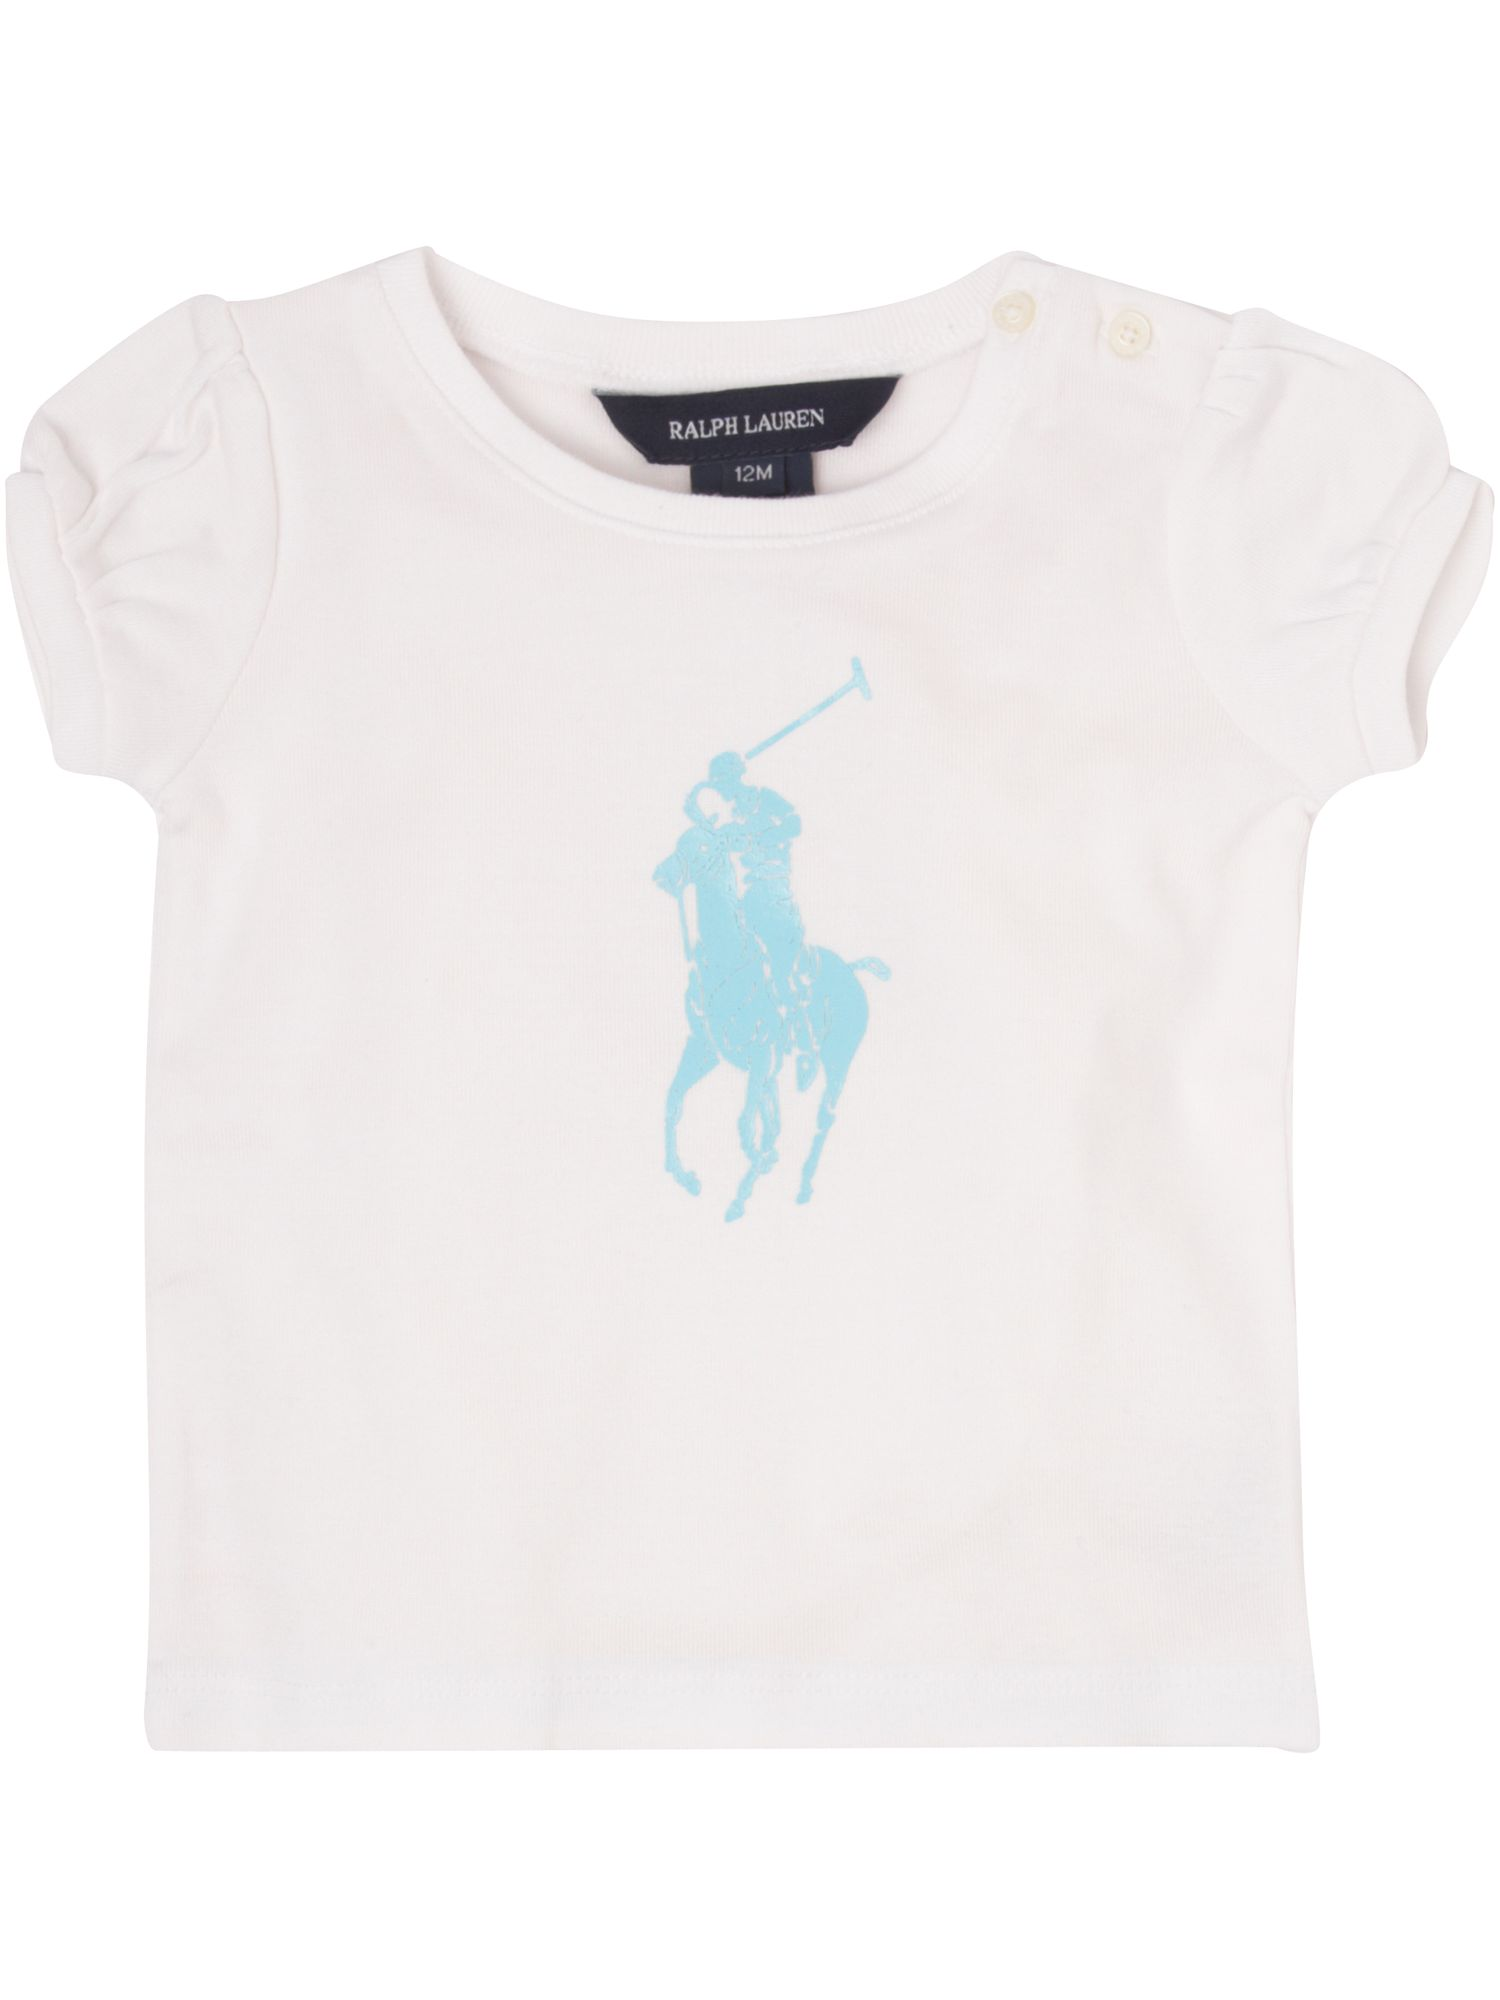 Ralph Lauren Short-sleeved large pony logo T-shirt product image